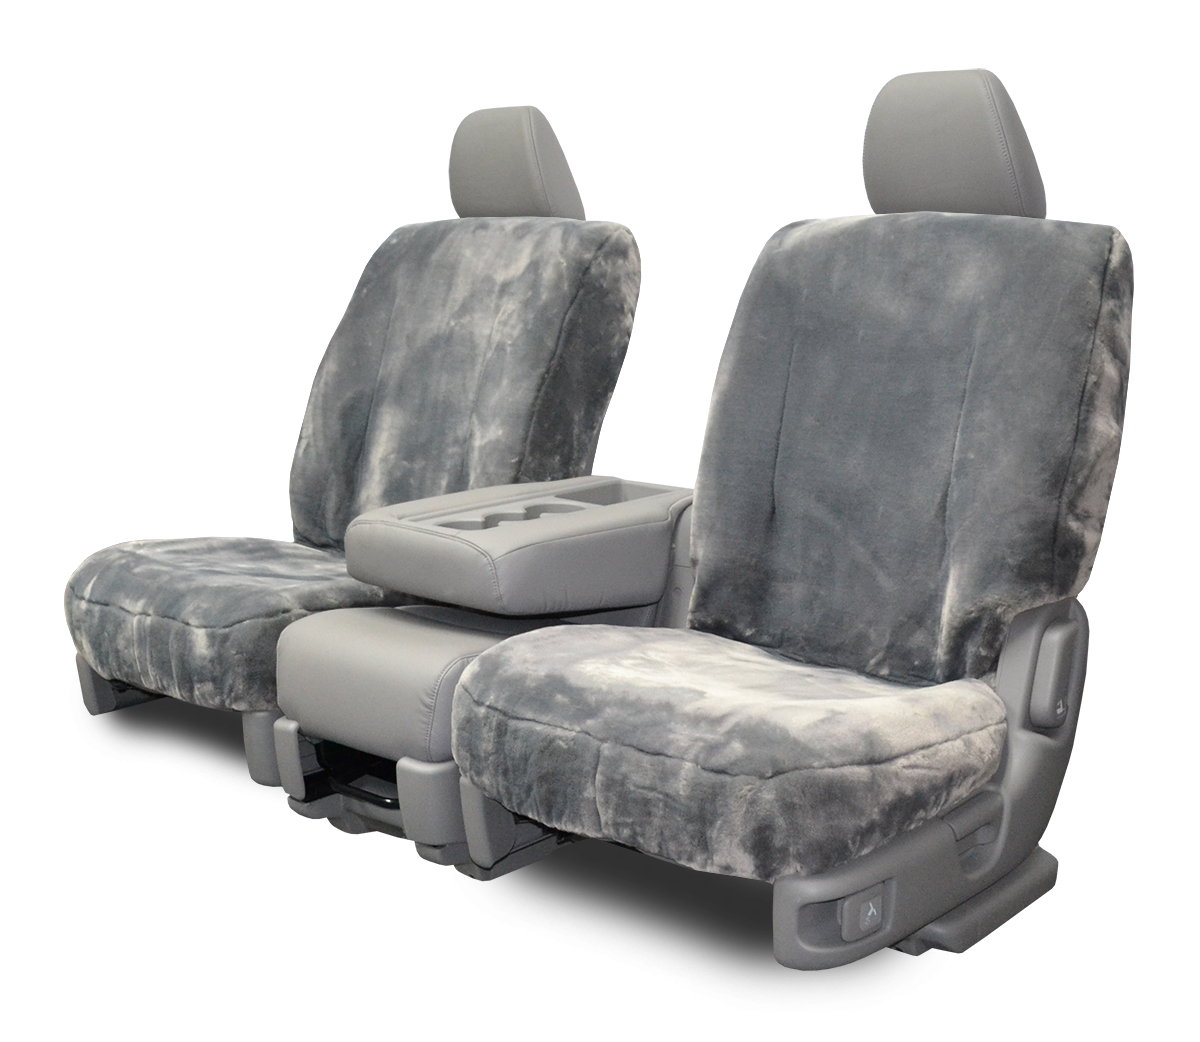 luxury fleece seat covers seat covers unlimited. Black Bedroom Furniture Sets. Home Design Ideas